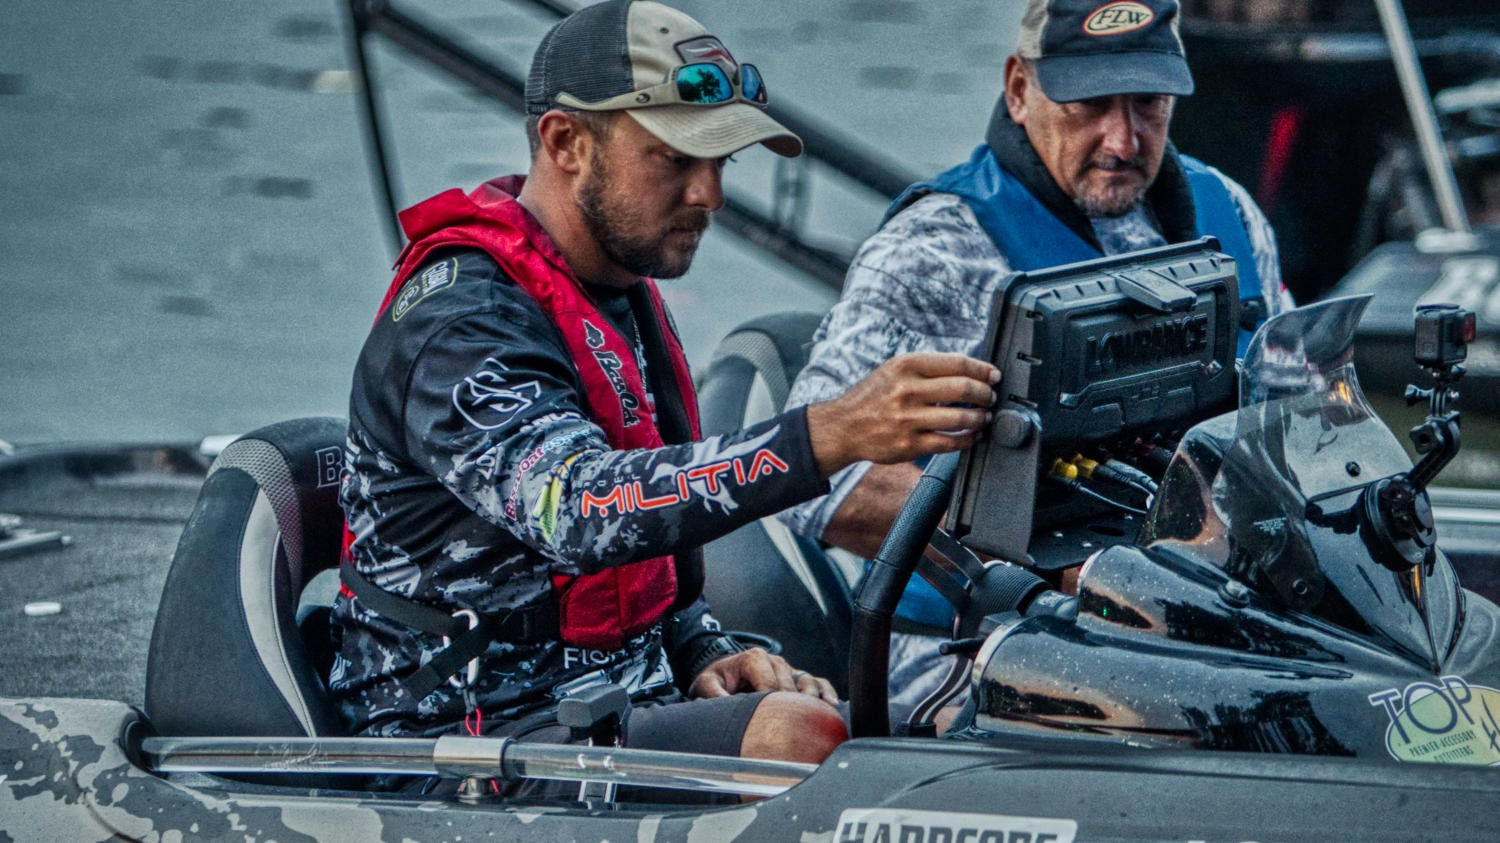 flw-cup-day2-7.jpg